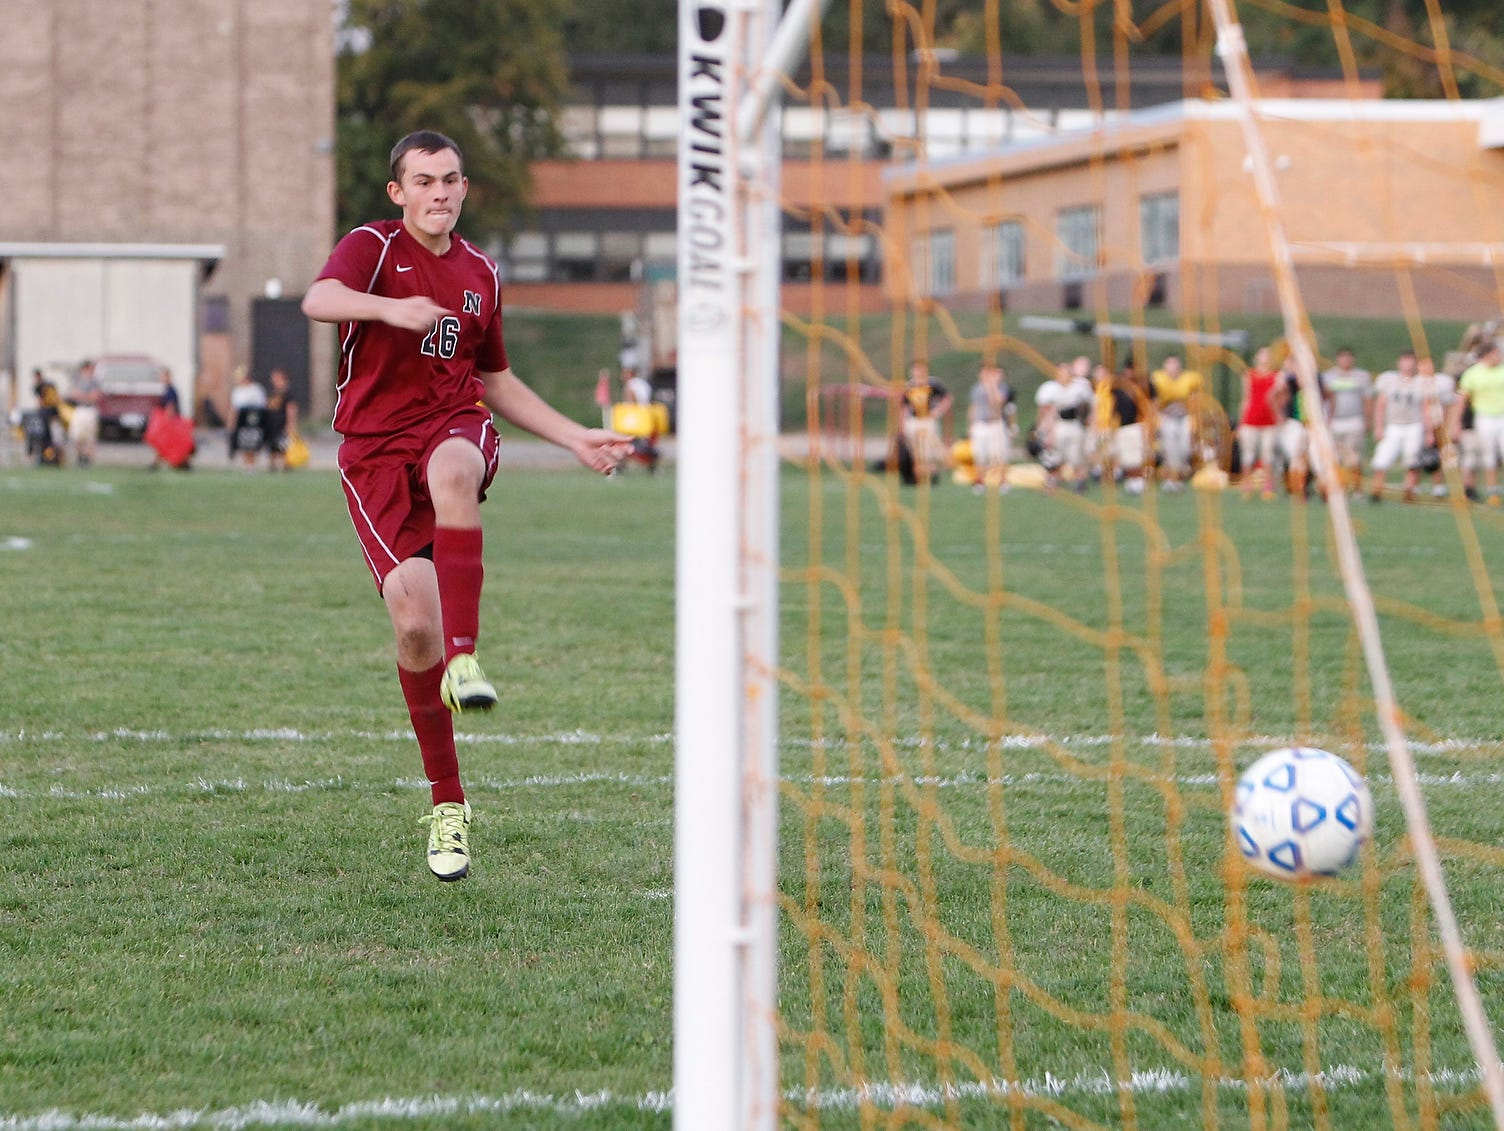 Nyack's Zach Stone (26) watches a penalty kick during a boys soccer game against Nanuet at Nanuet High School on Wednesday, Oct. 21, 2015.